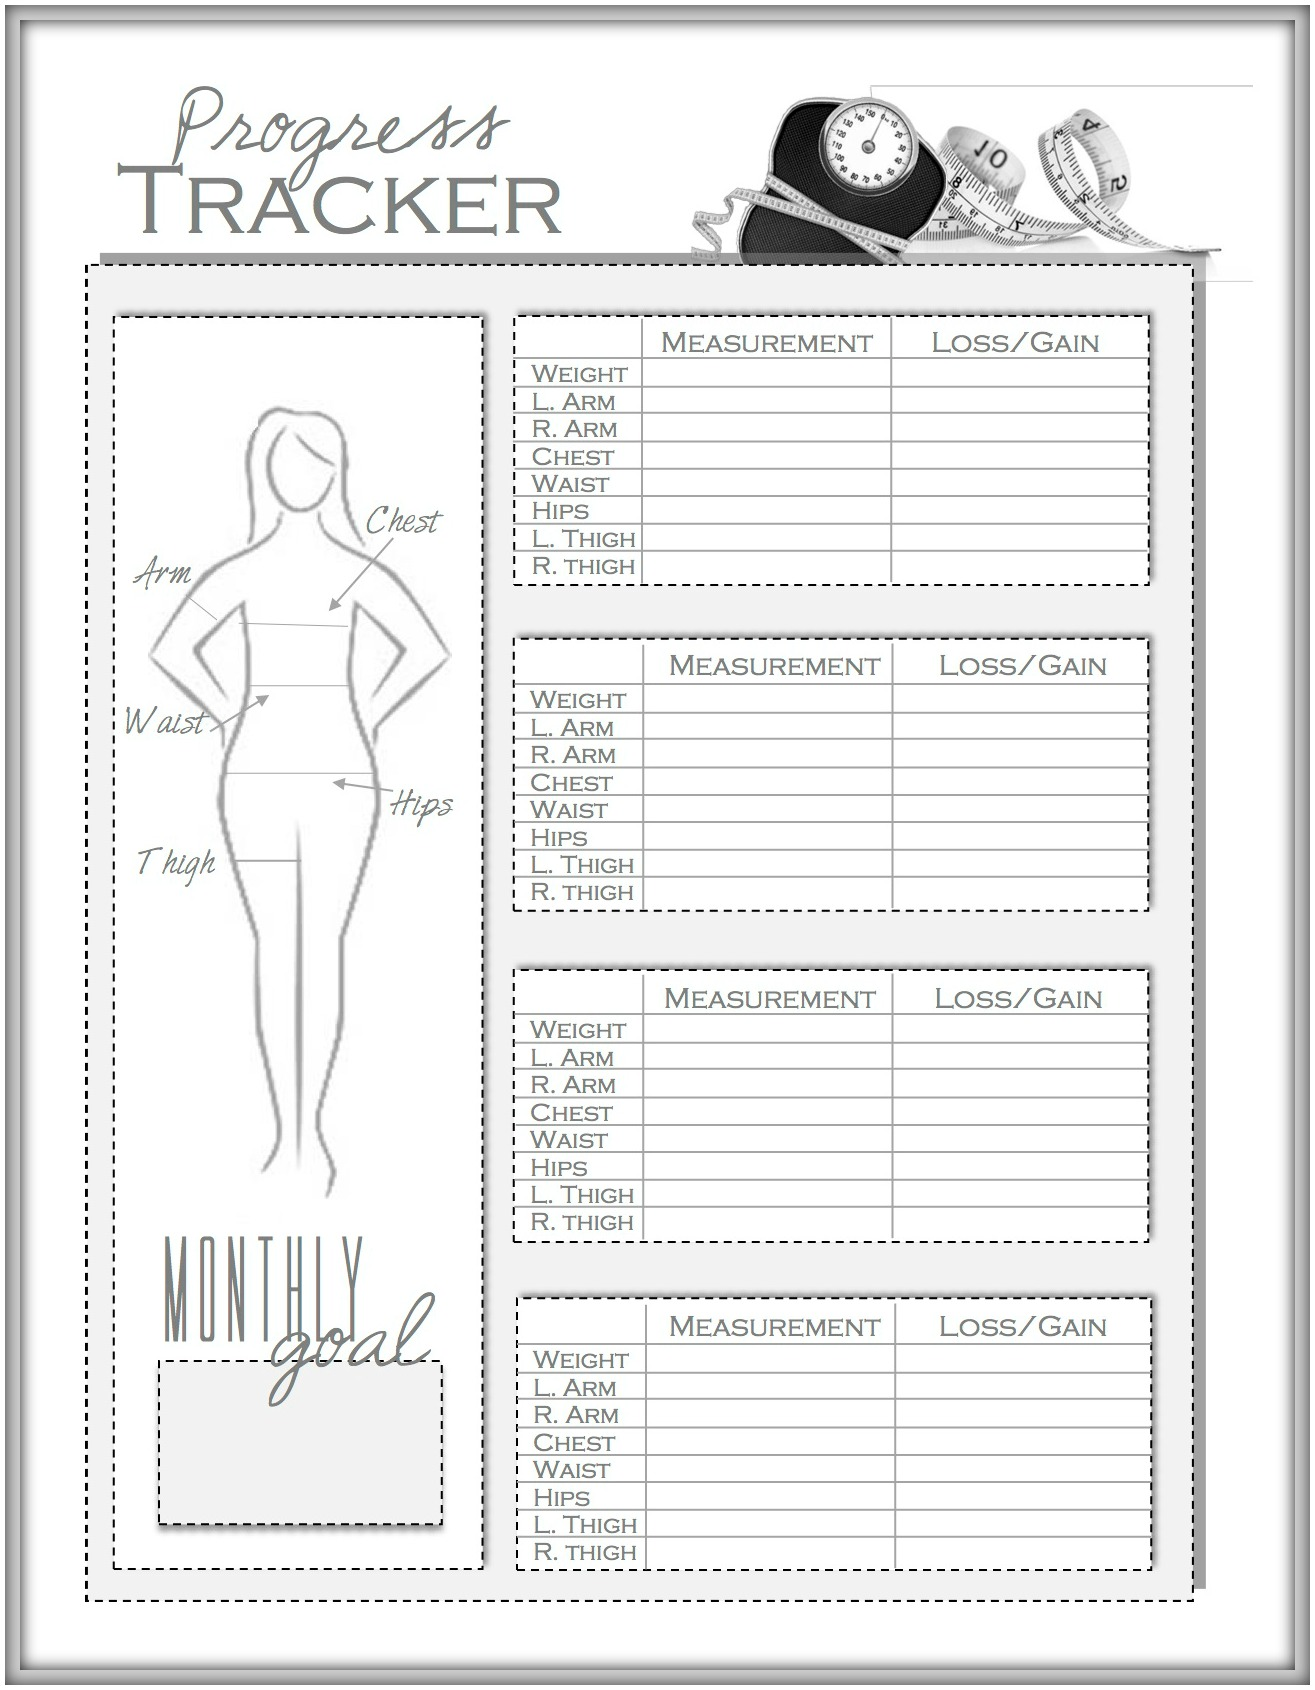 Weight loss tracker spreadsheet laobingkaisuo excel weight loss chart stones pounds weight loss tracker chart nvjuhfo Gallery